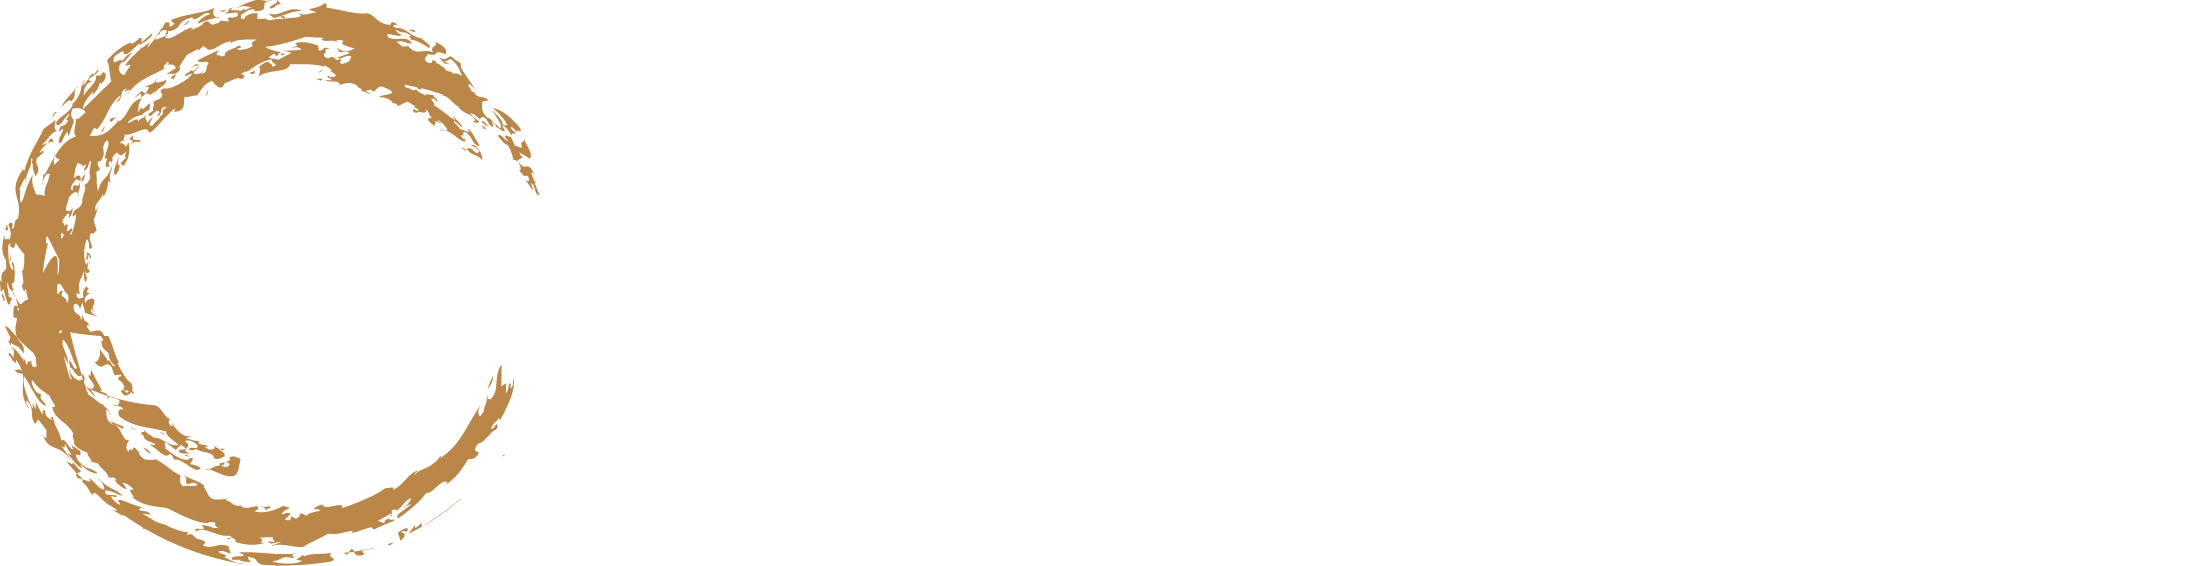 Copperstone Apartment Homes